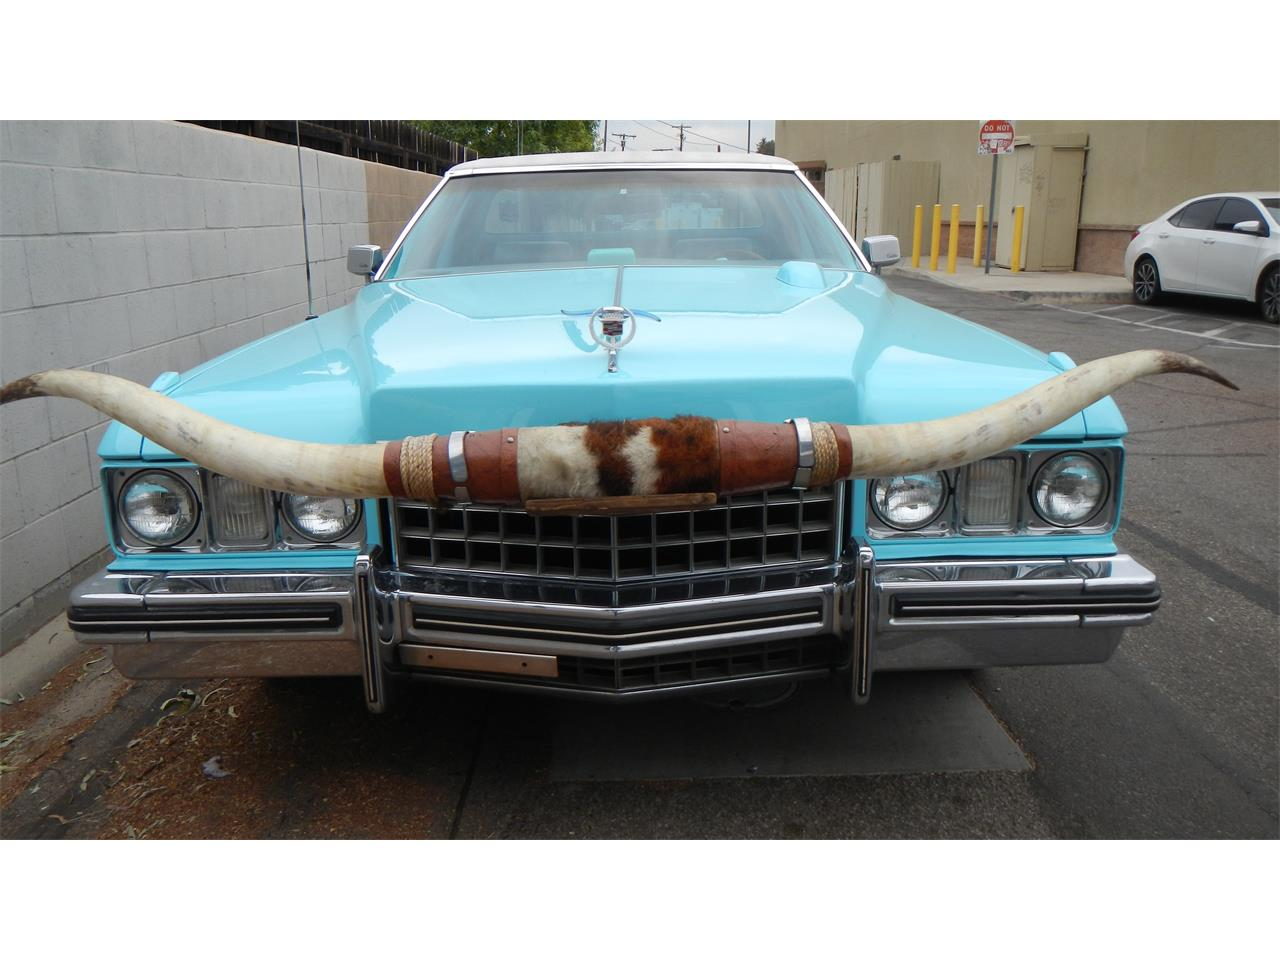 1973 Cadillac Eldorado for sale in Woodland Hills, CA – photo 4